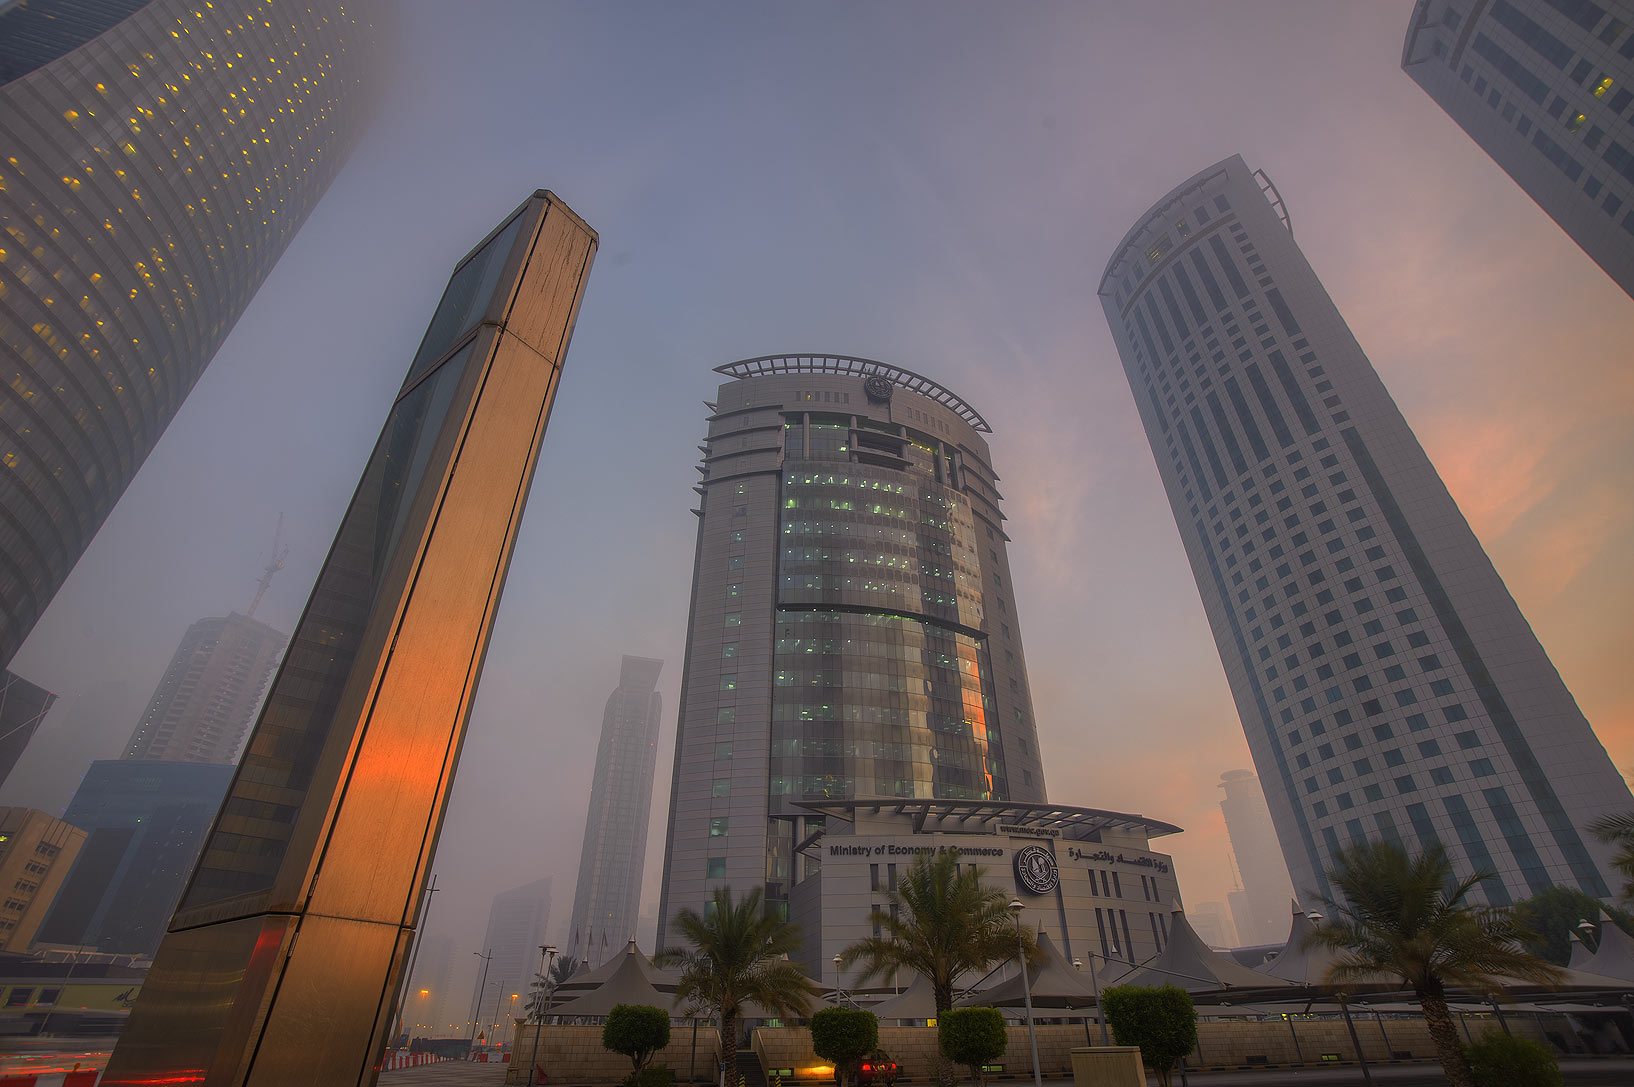 Crossing of Majlis Al Taawon and Al Funduq streets in West Bay in fog. Doha, Qatar